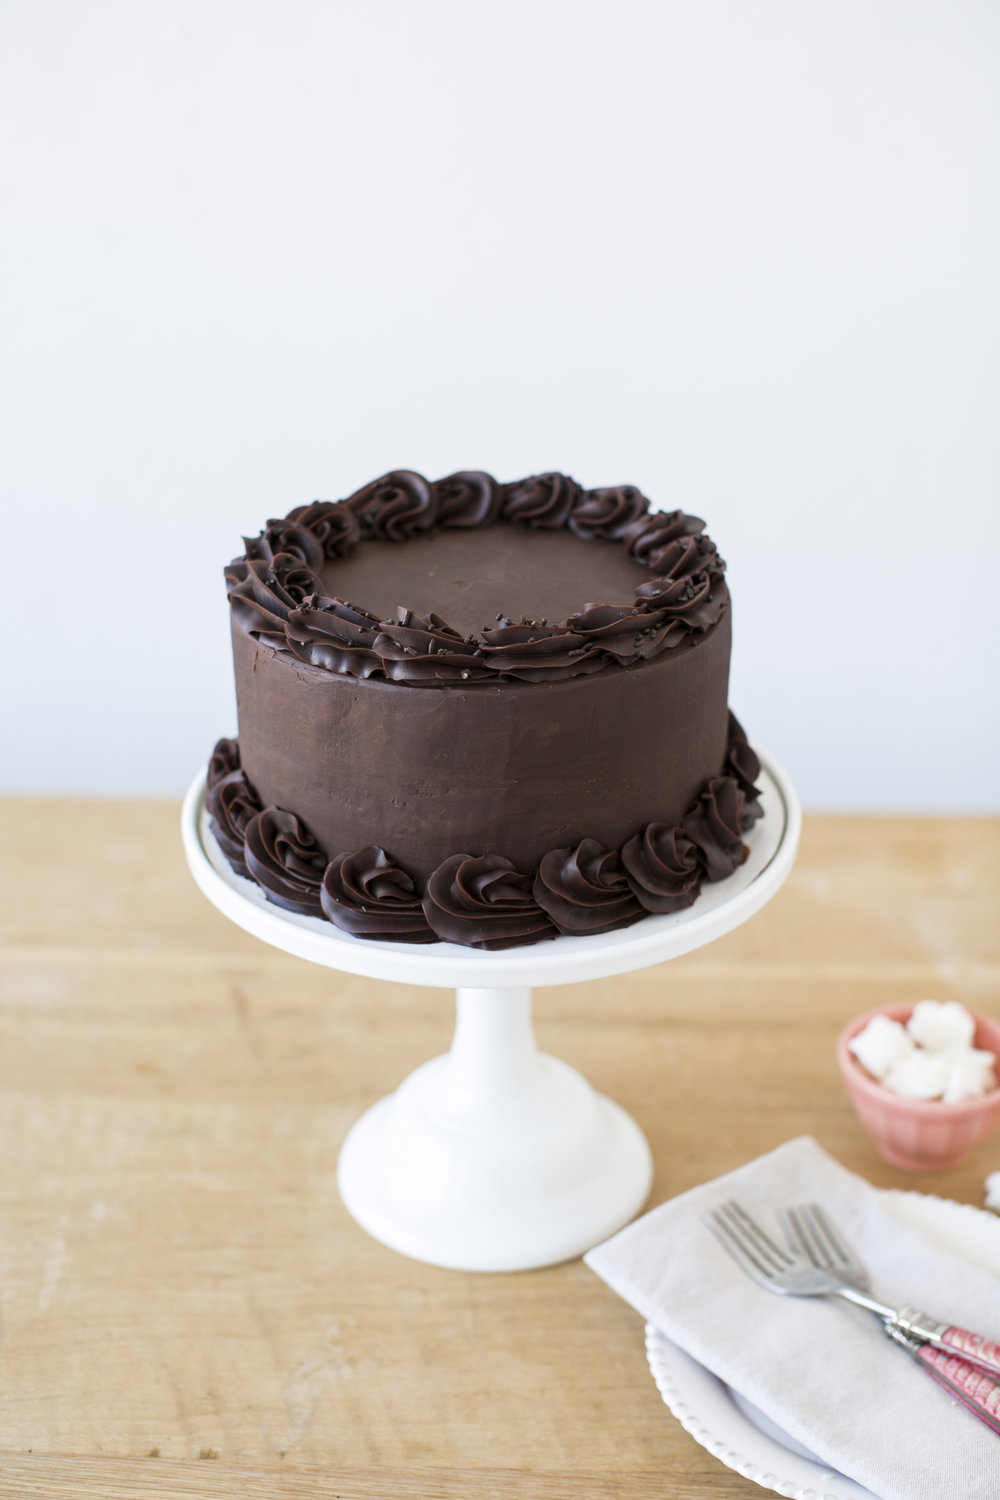 Chocolate Maximus   Chocolate cake, with chocolate ganache filling and icing    $70